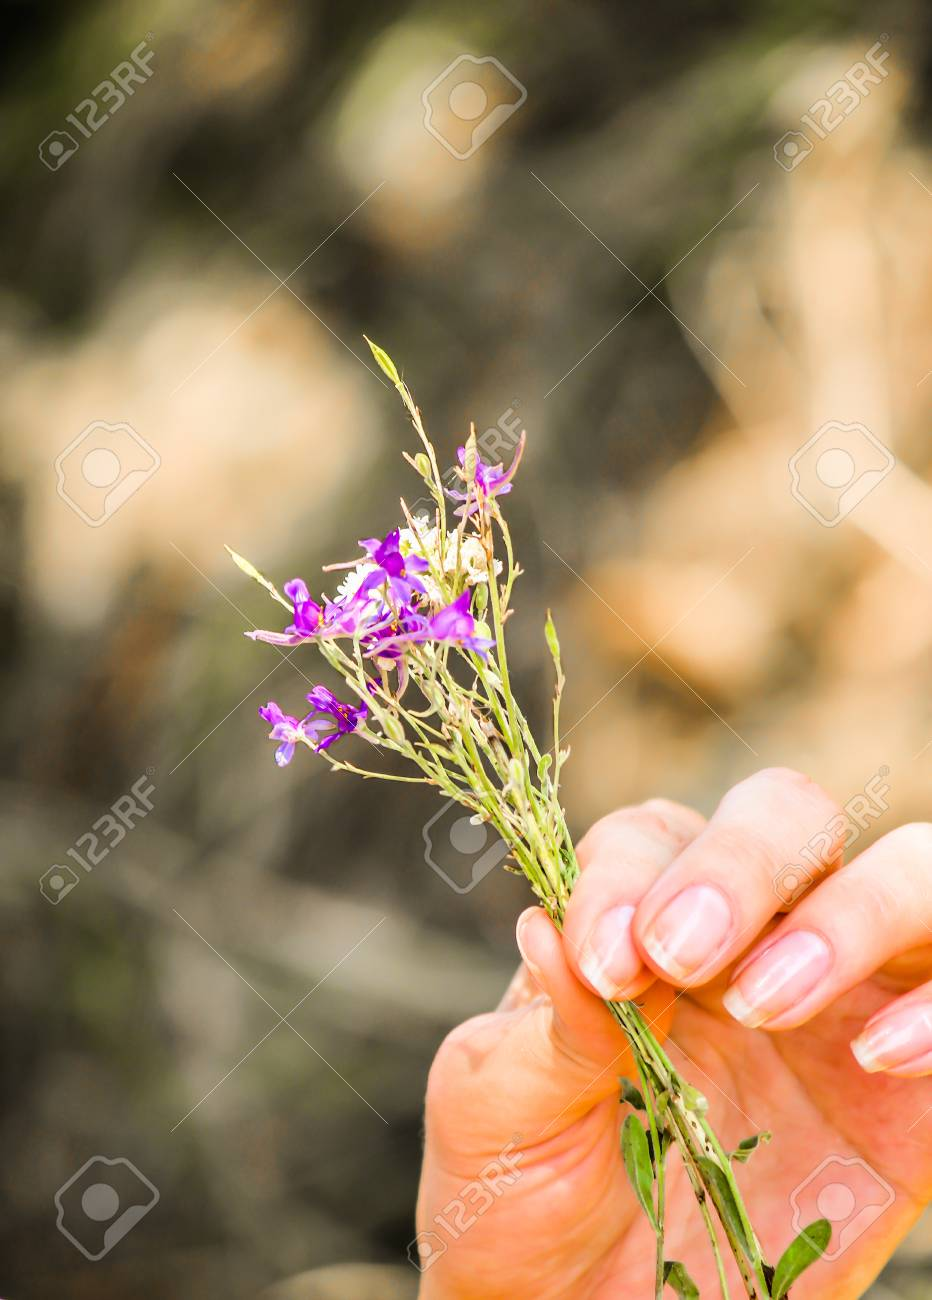 small bunch of flowers in hand stock photo picture and royalty free rh 123rf com small bunch of flowers crossword puzzle clue small bunch of flowers crossword puzzle clue